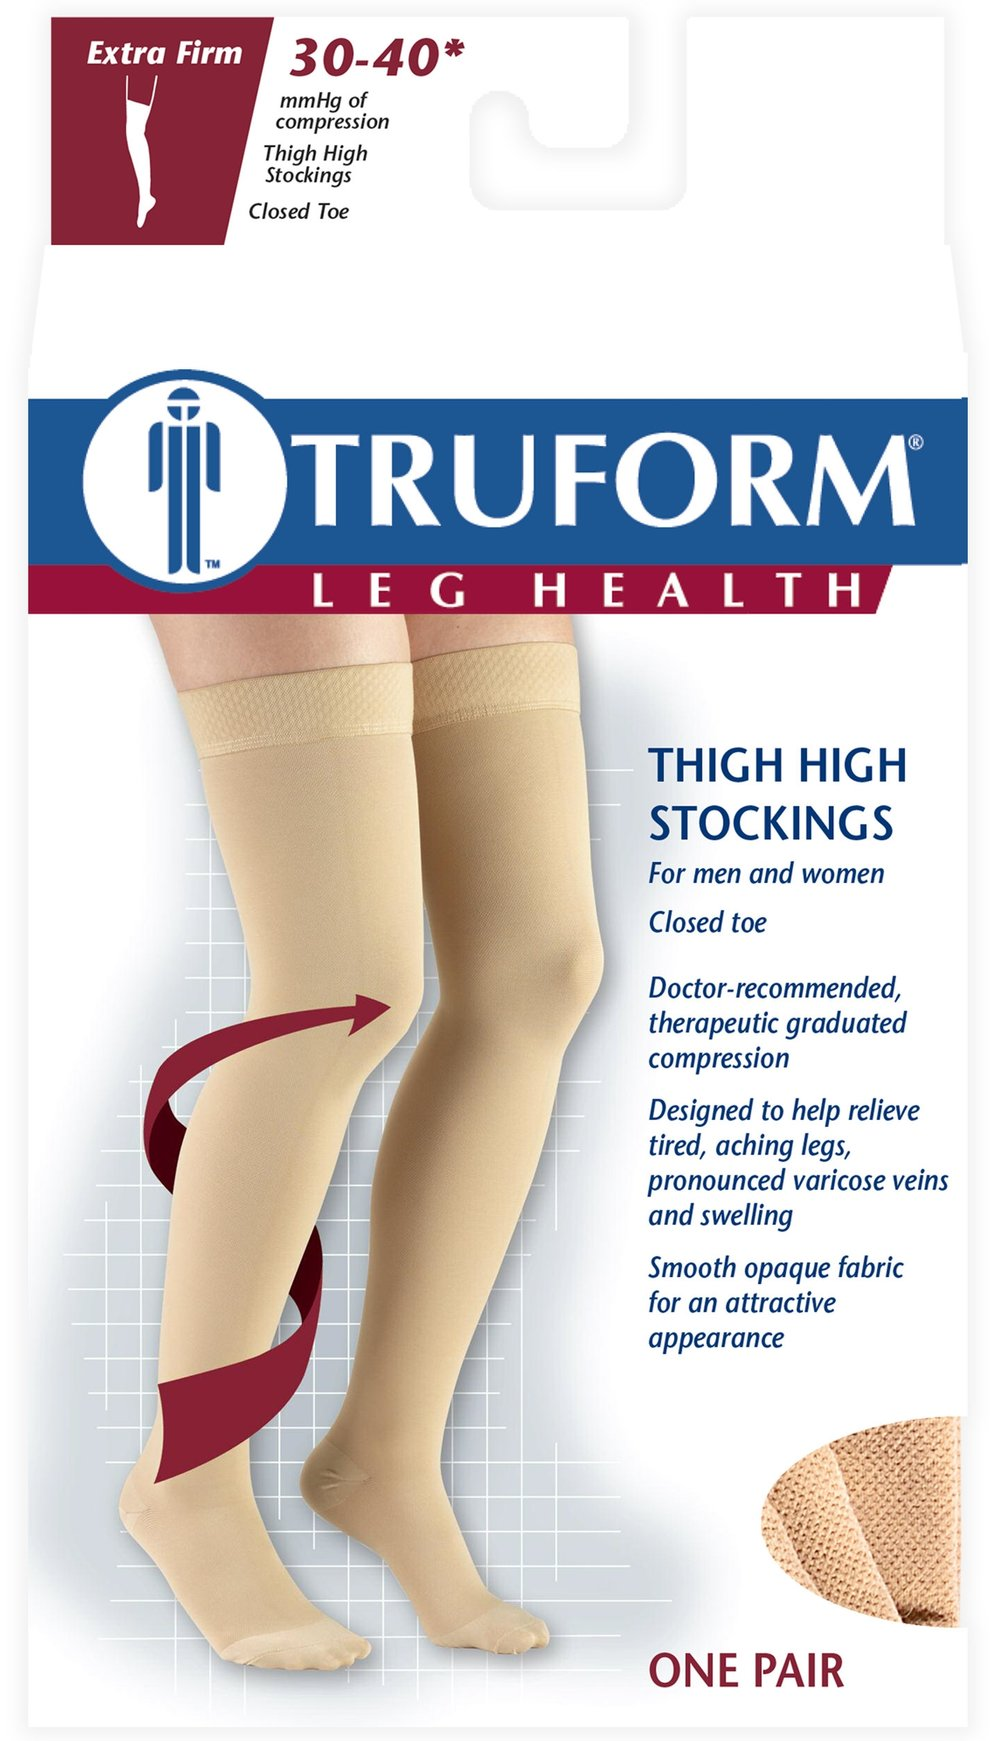 8848 / THIGH HIGH-SILICONE DOT TOP, CLOSED TOE / 30-40 MMHG PACKAGING IMAGE